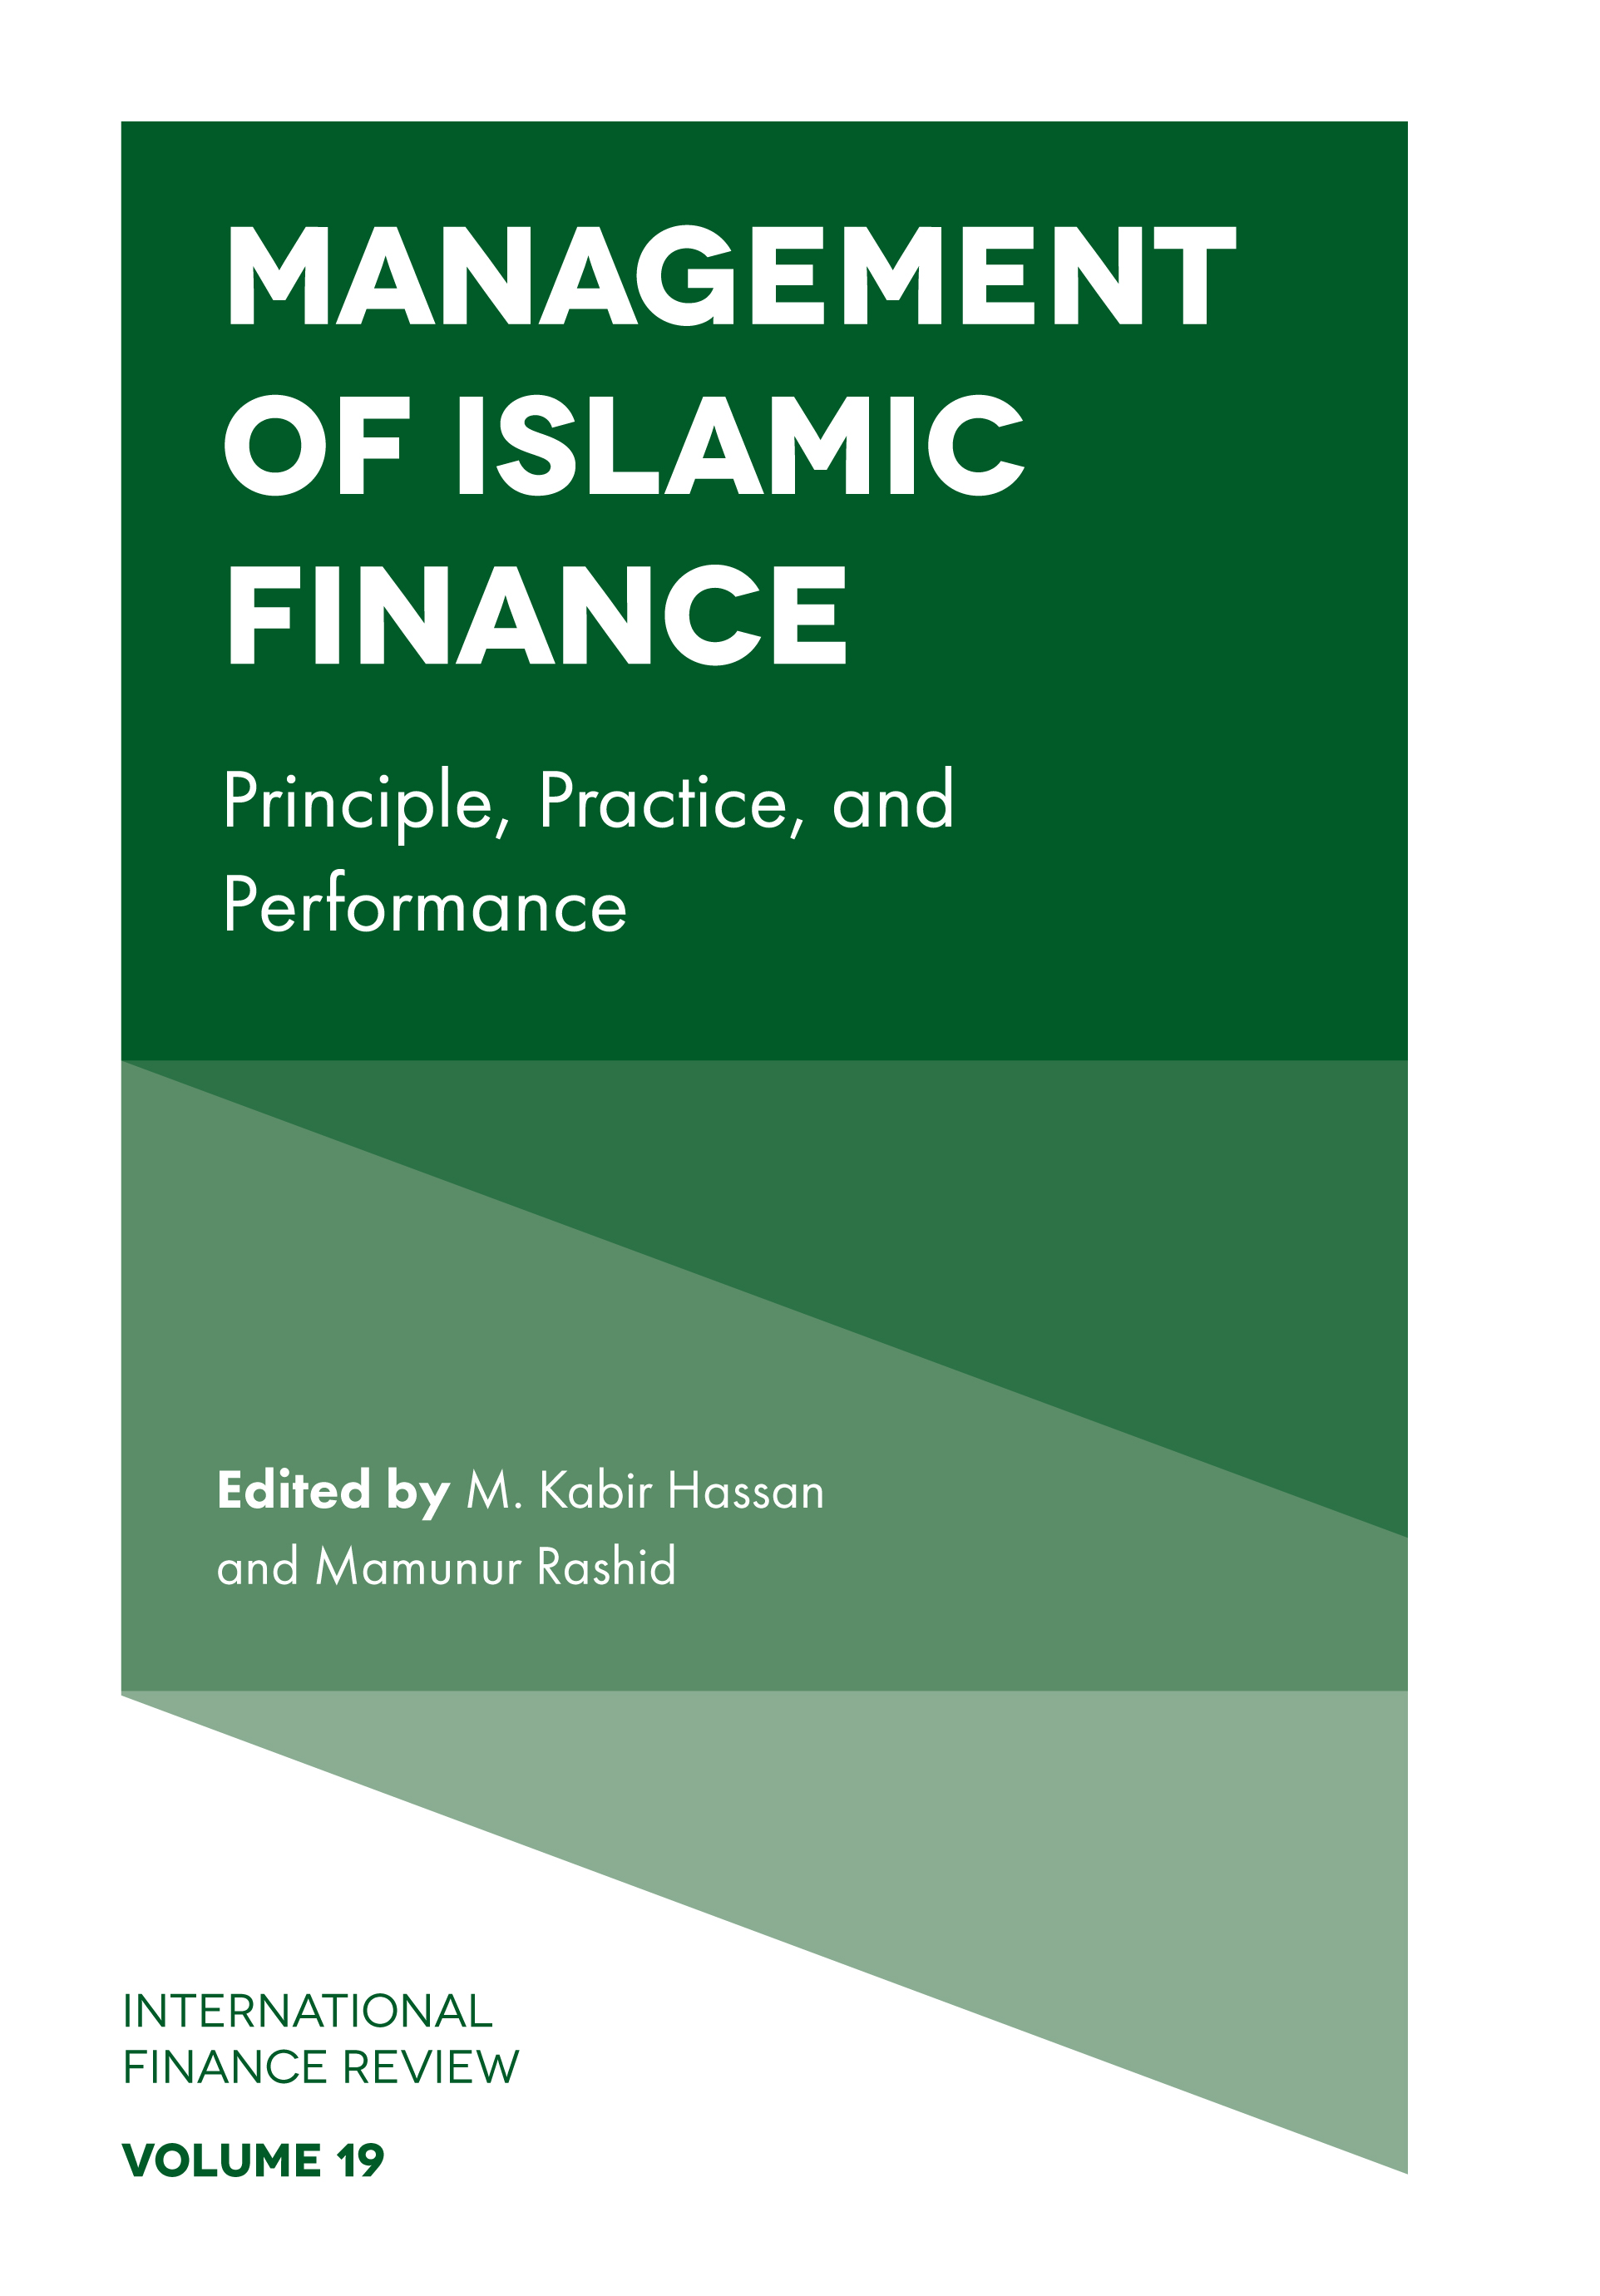 Book cover for Management of Islamic Finance:  Principle, Practice, and Performance a book by M. Kabir Hassan, Mamunur  Rashid